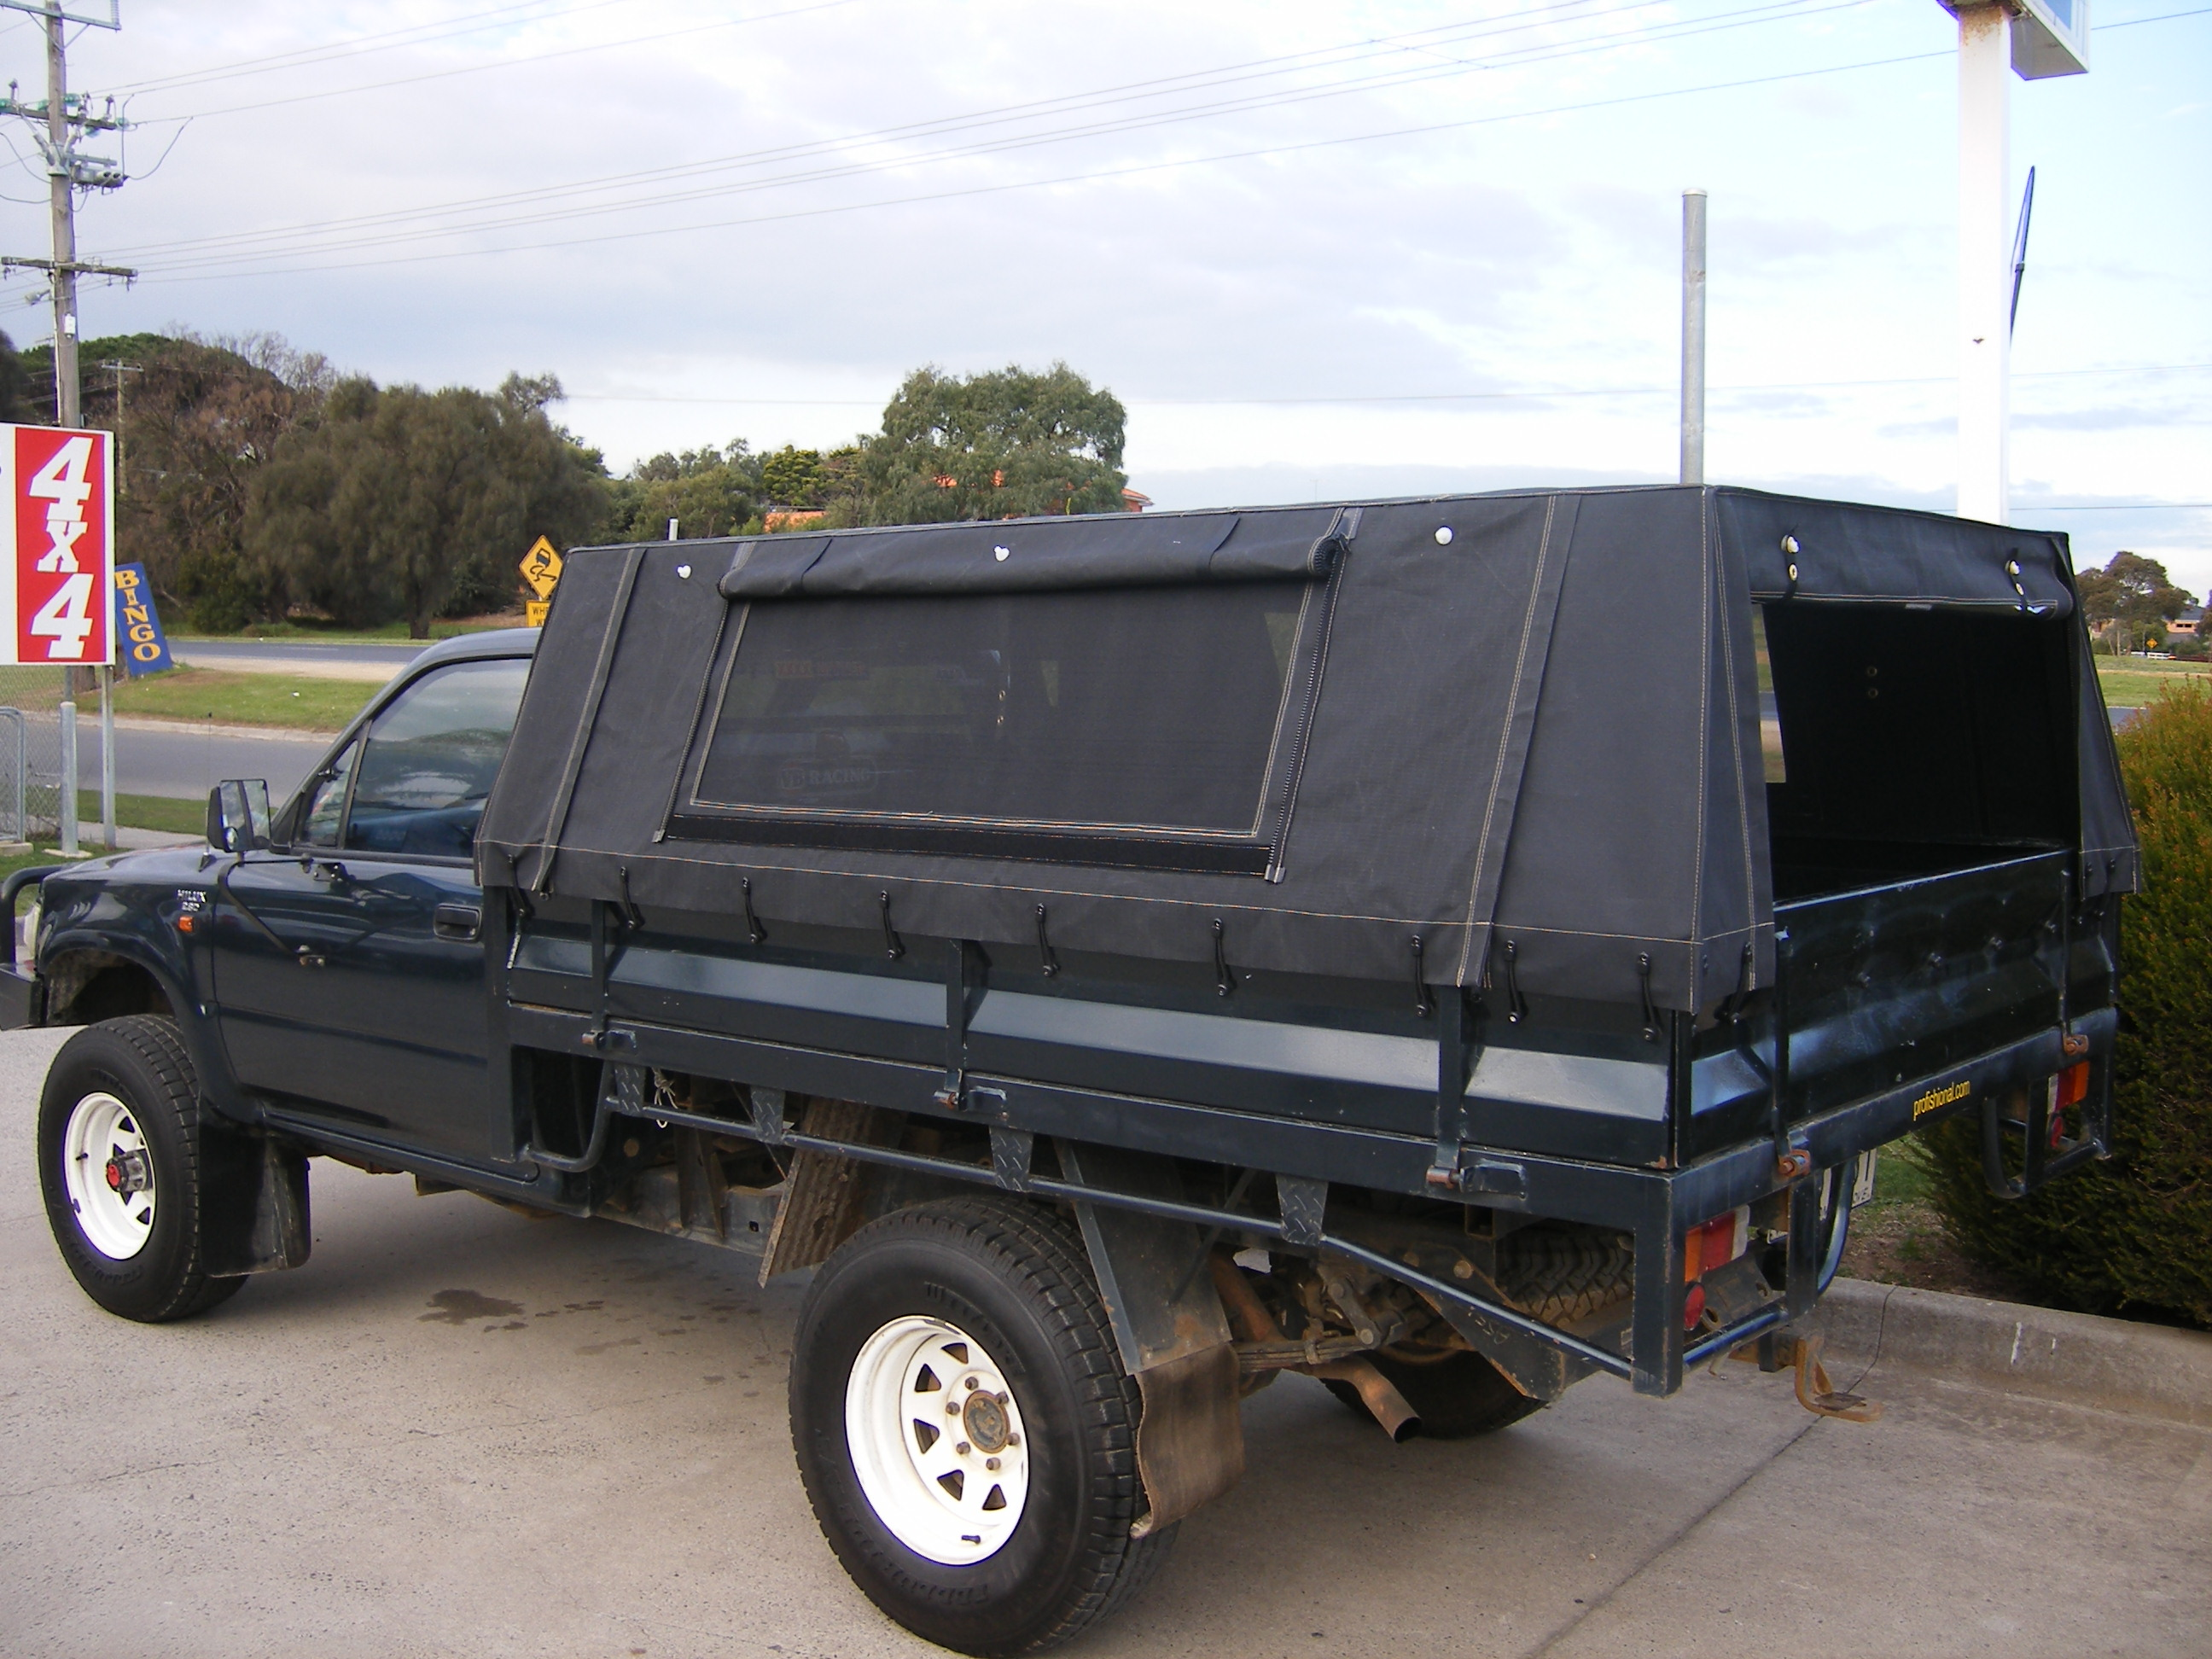 7u2032 Canopy with 4 Side Zips u0026 2 Side Flywire Windows & Vehicle Canvas | Outback Campers | Camper Trailers Melbourne